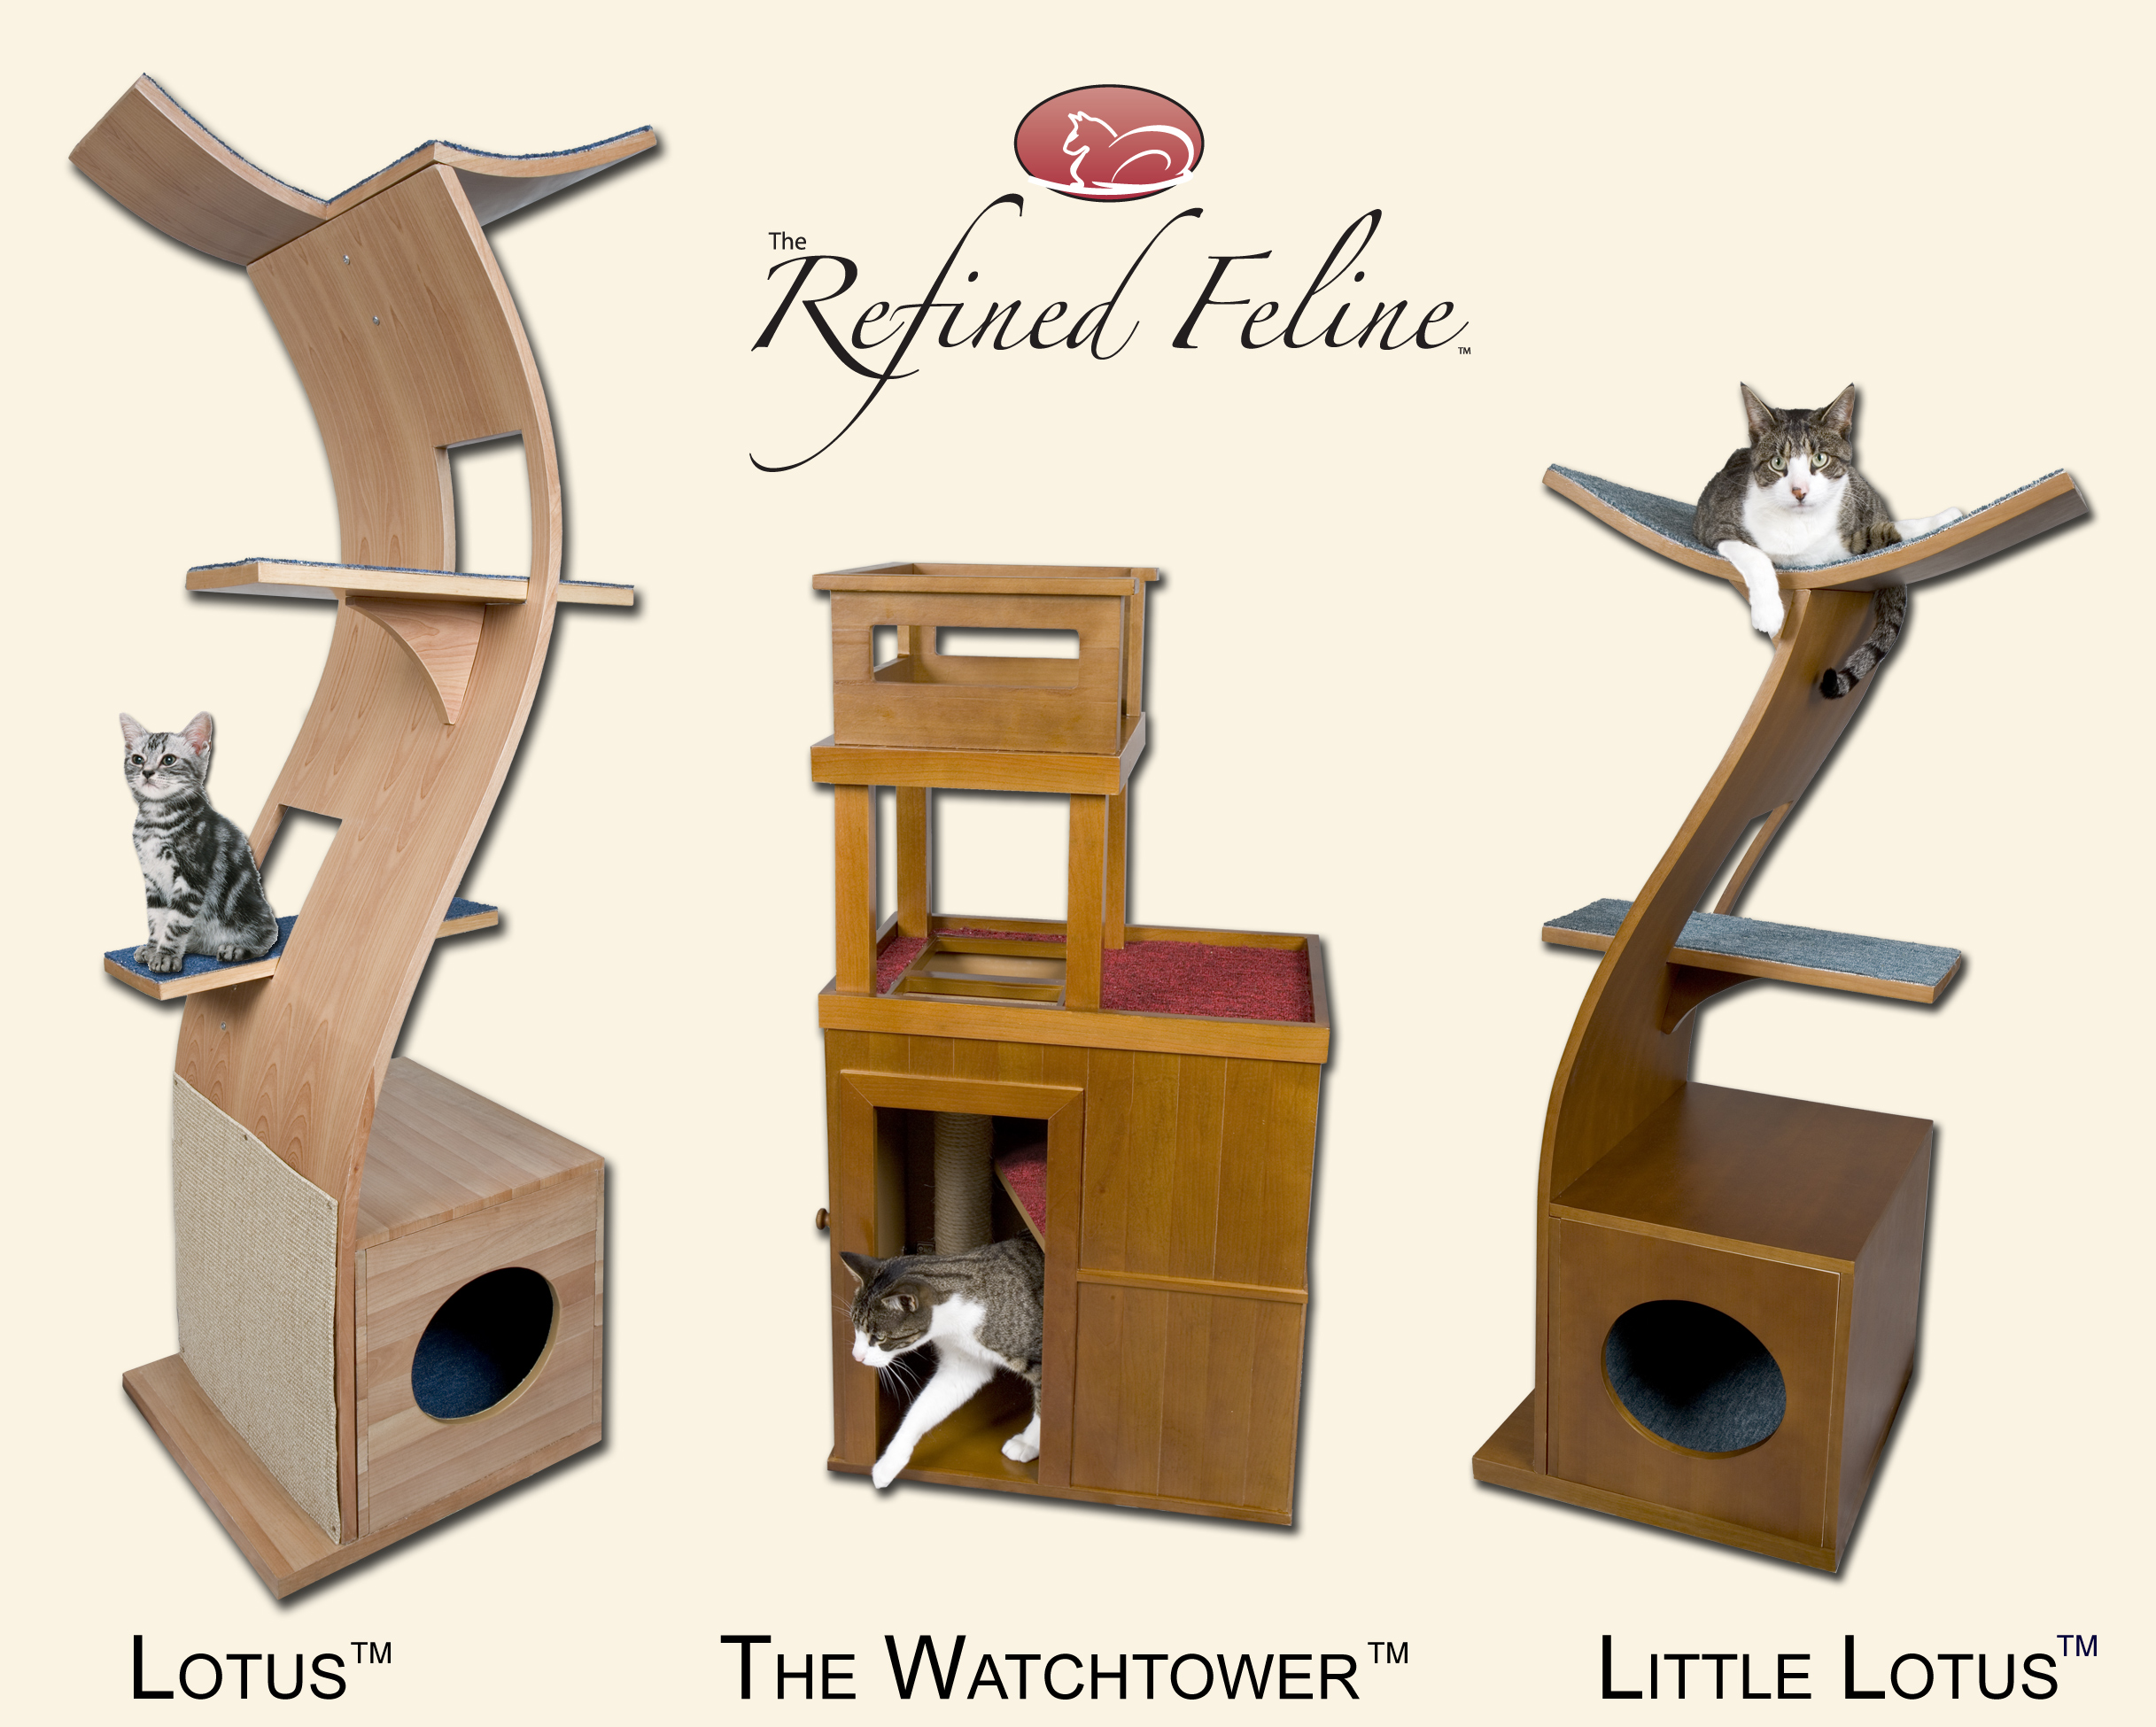 cat furniture designs no longer eyesores - the refined feline cat furniture product lineadditional images availableupon request copyright  the refined feline wwwtherefinedfelinecom